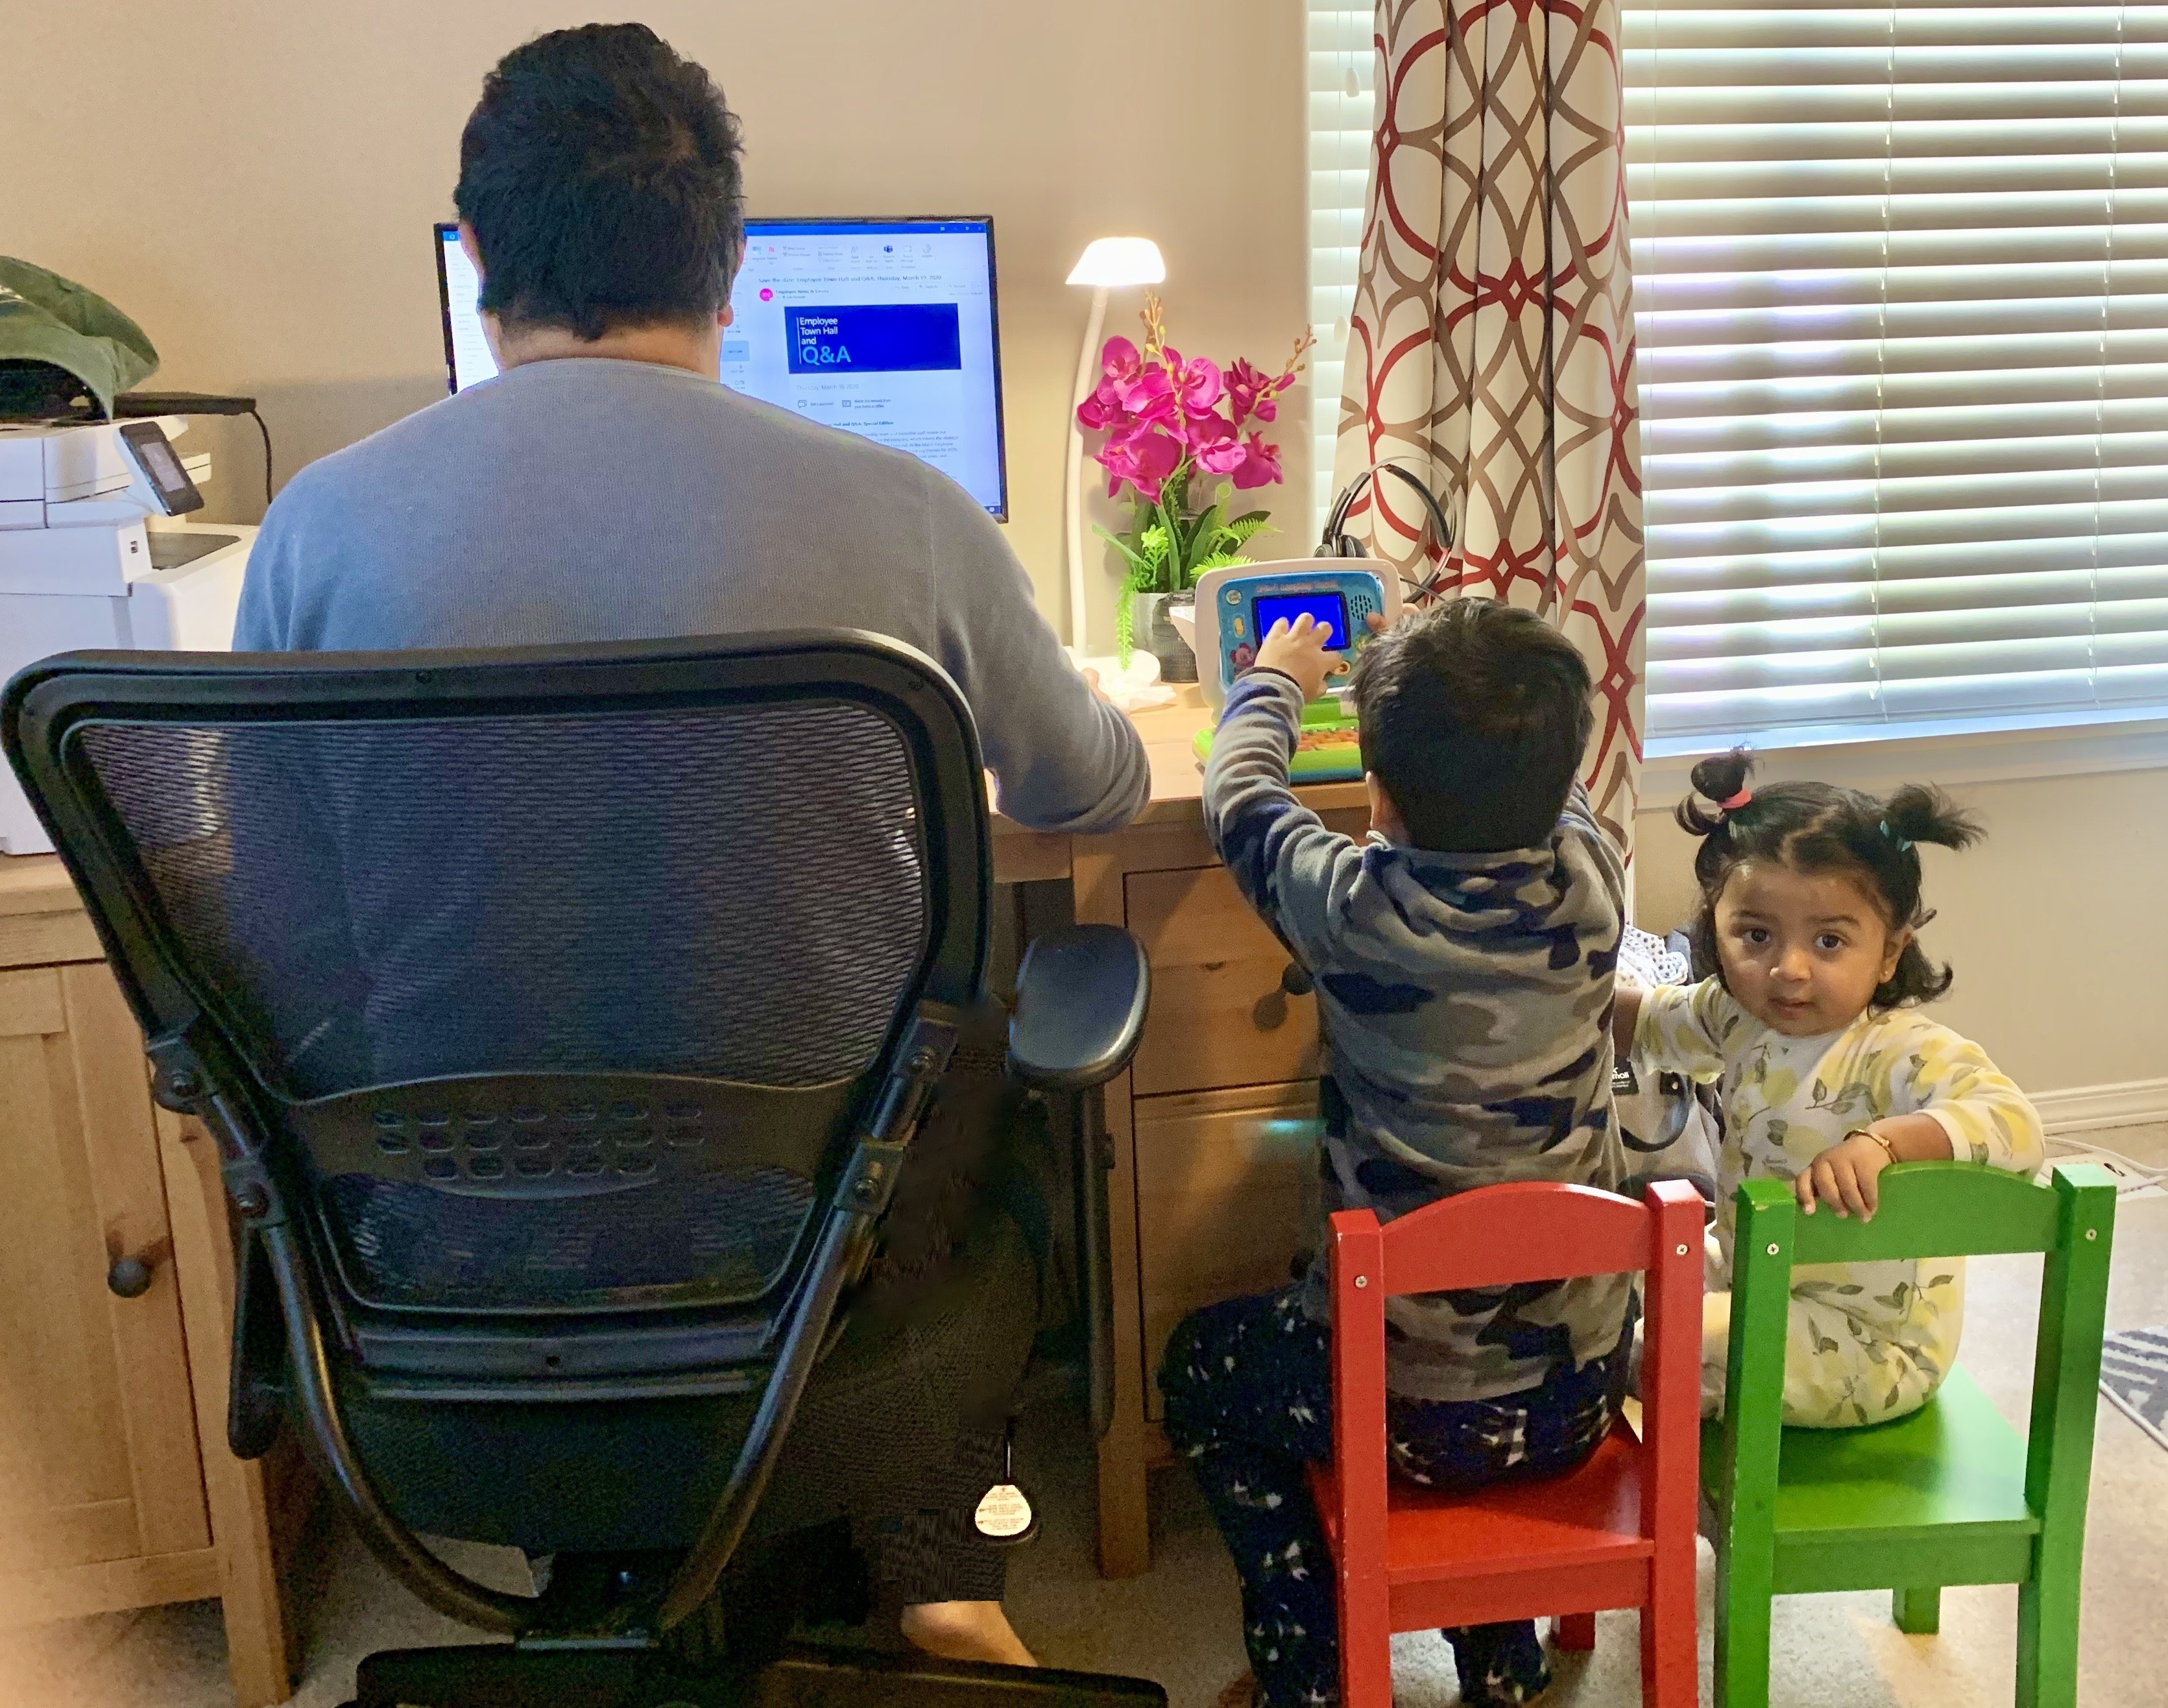 A Dad with his kids while working from home (Photo taken by the Mom)